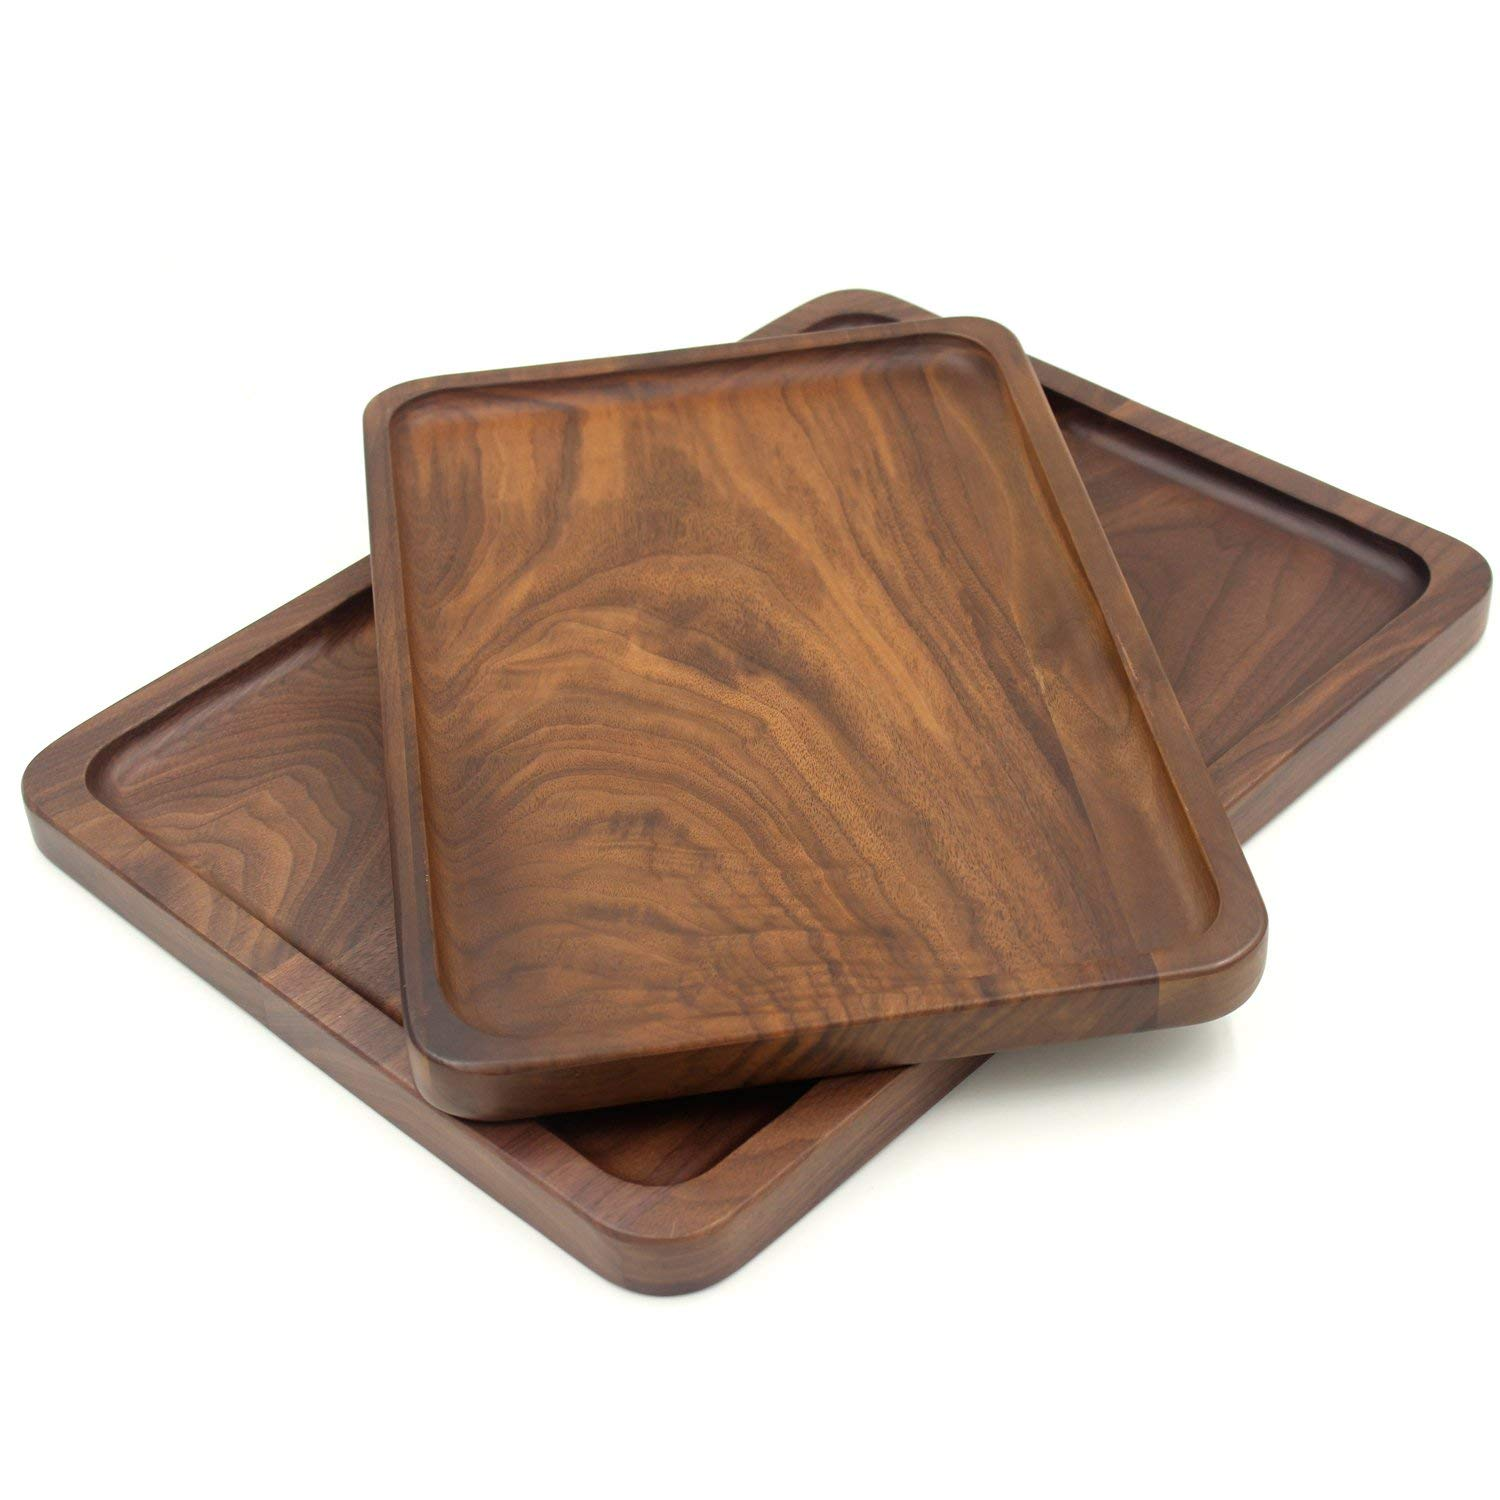 Walnut Serving Platter